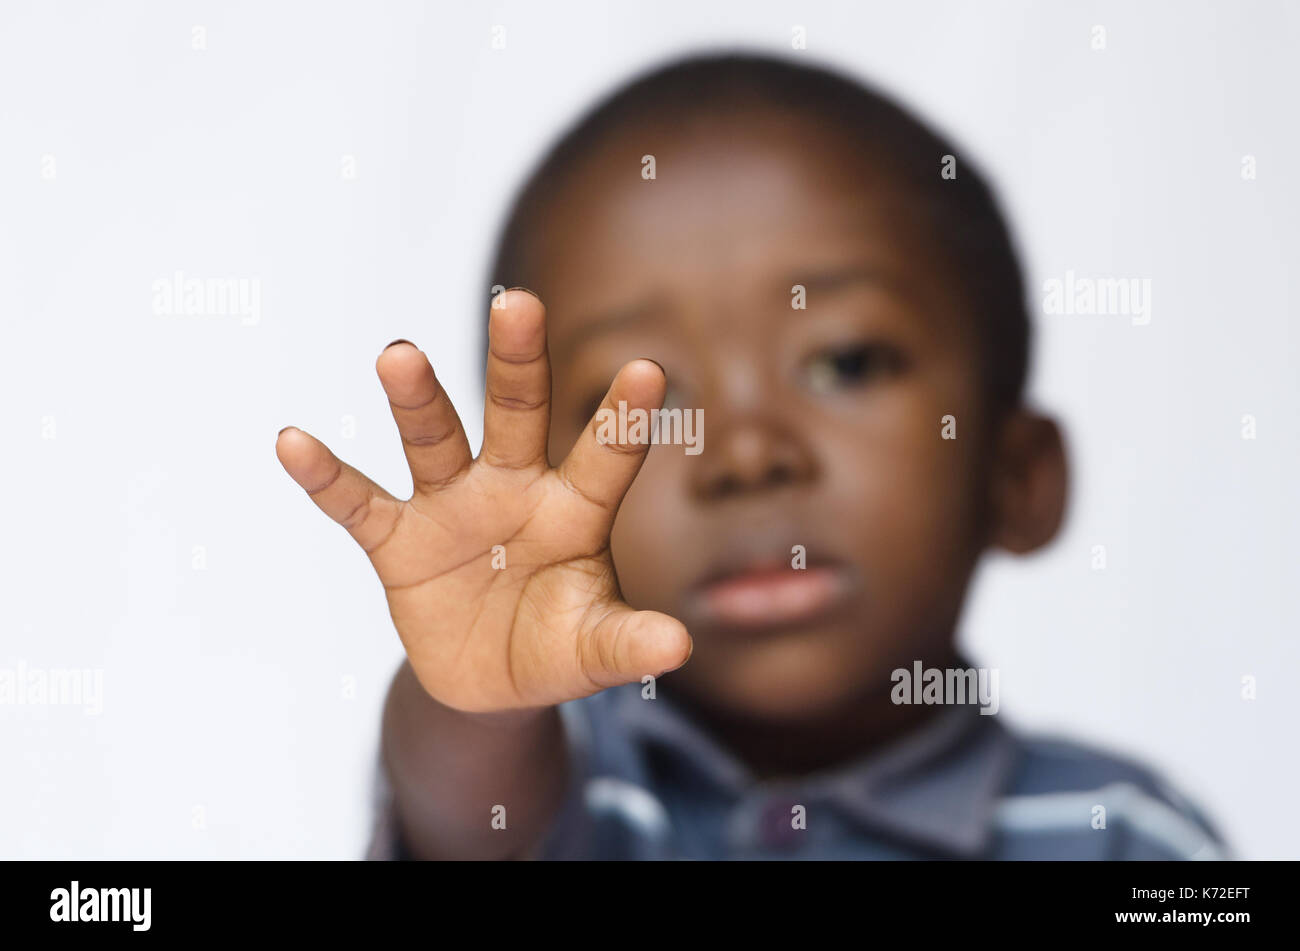 African boy holding his hand out as a STOP sign for racism and abuse - Stock Image